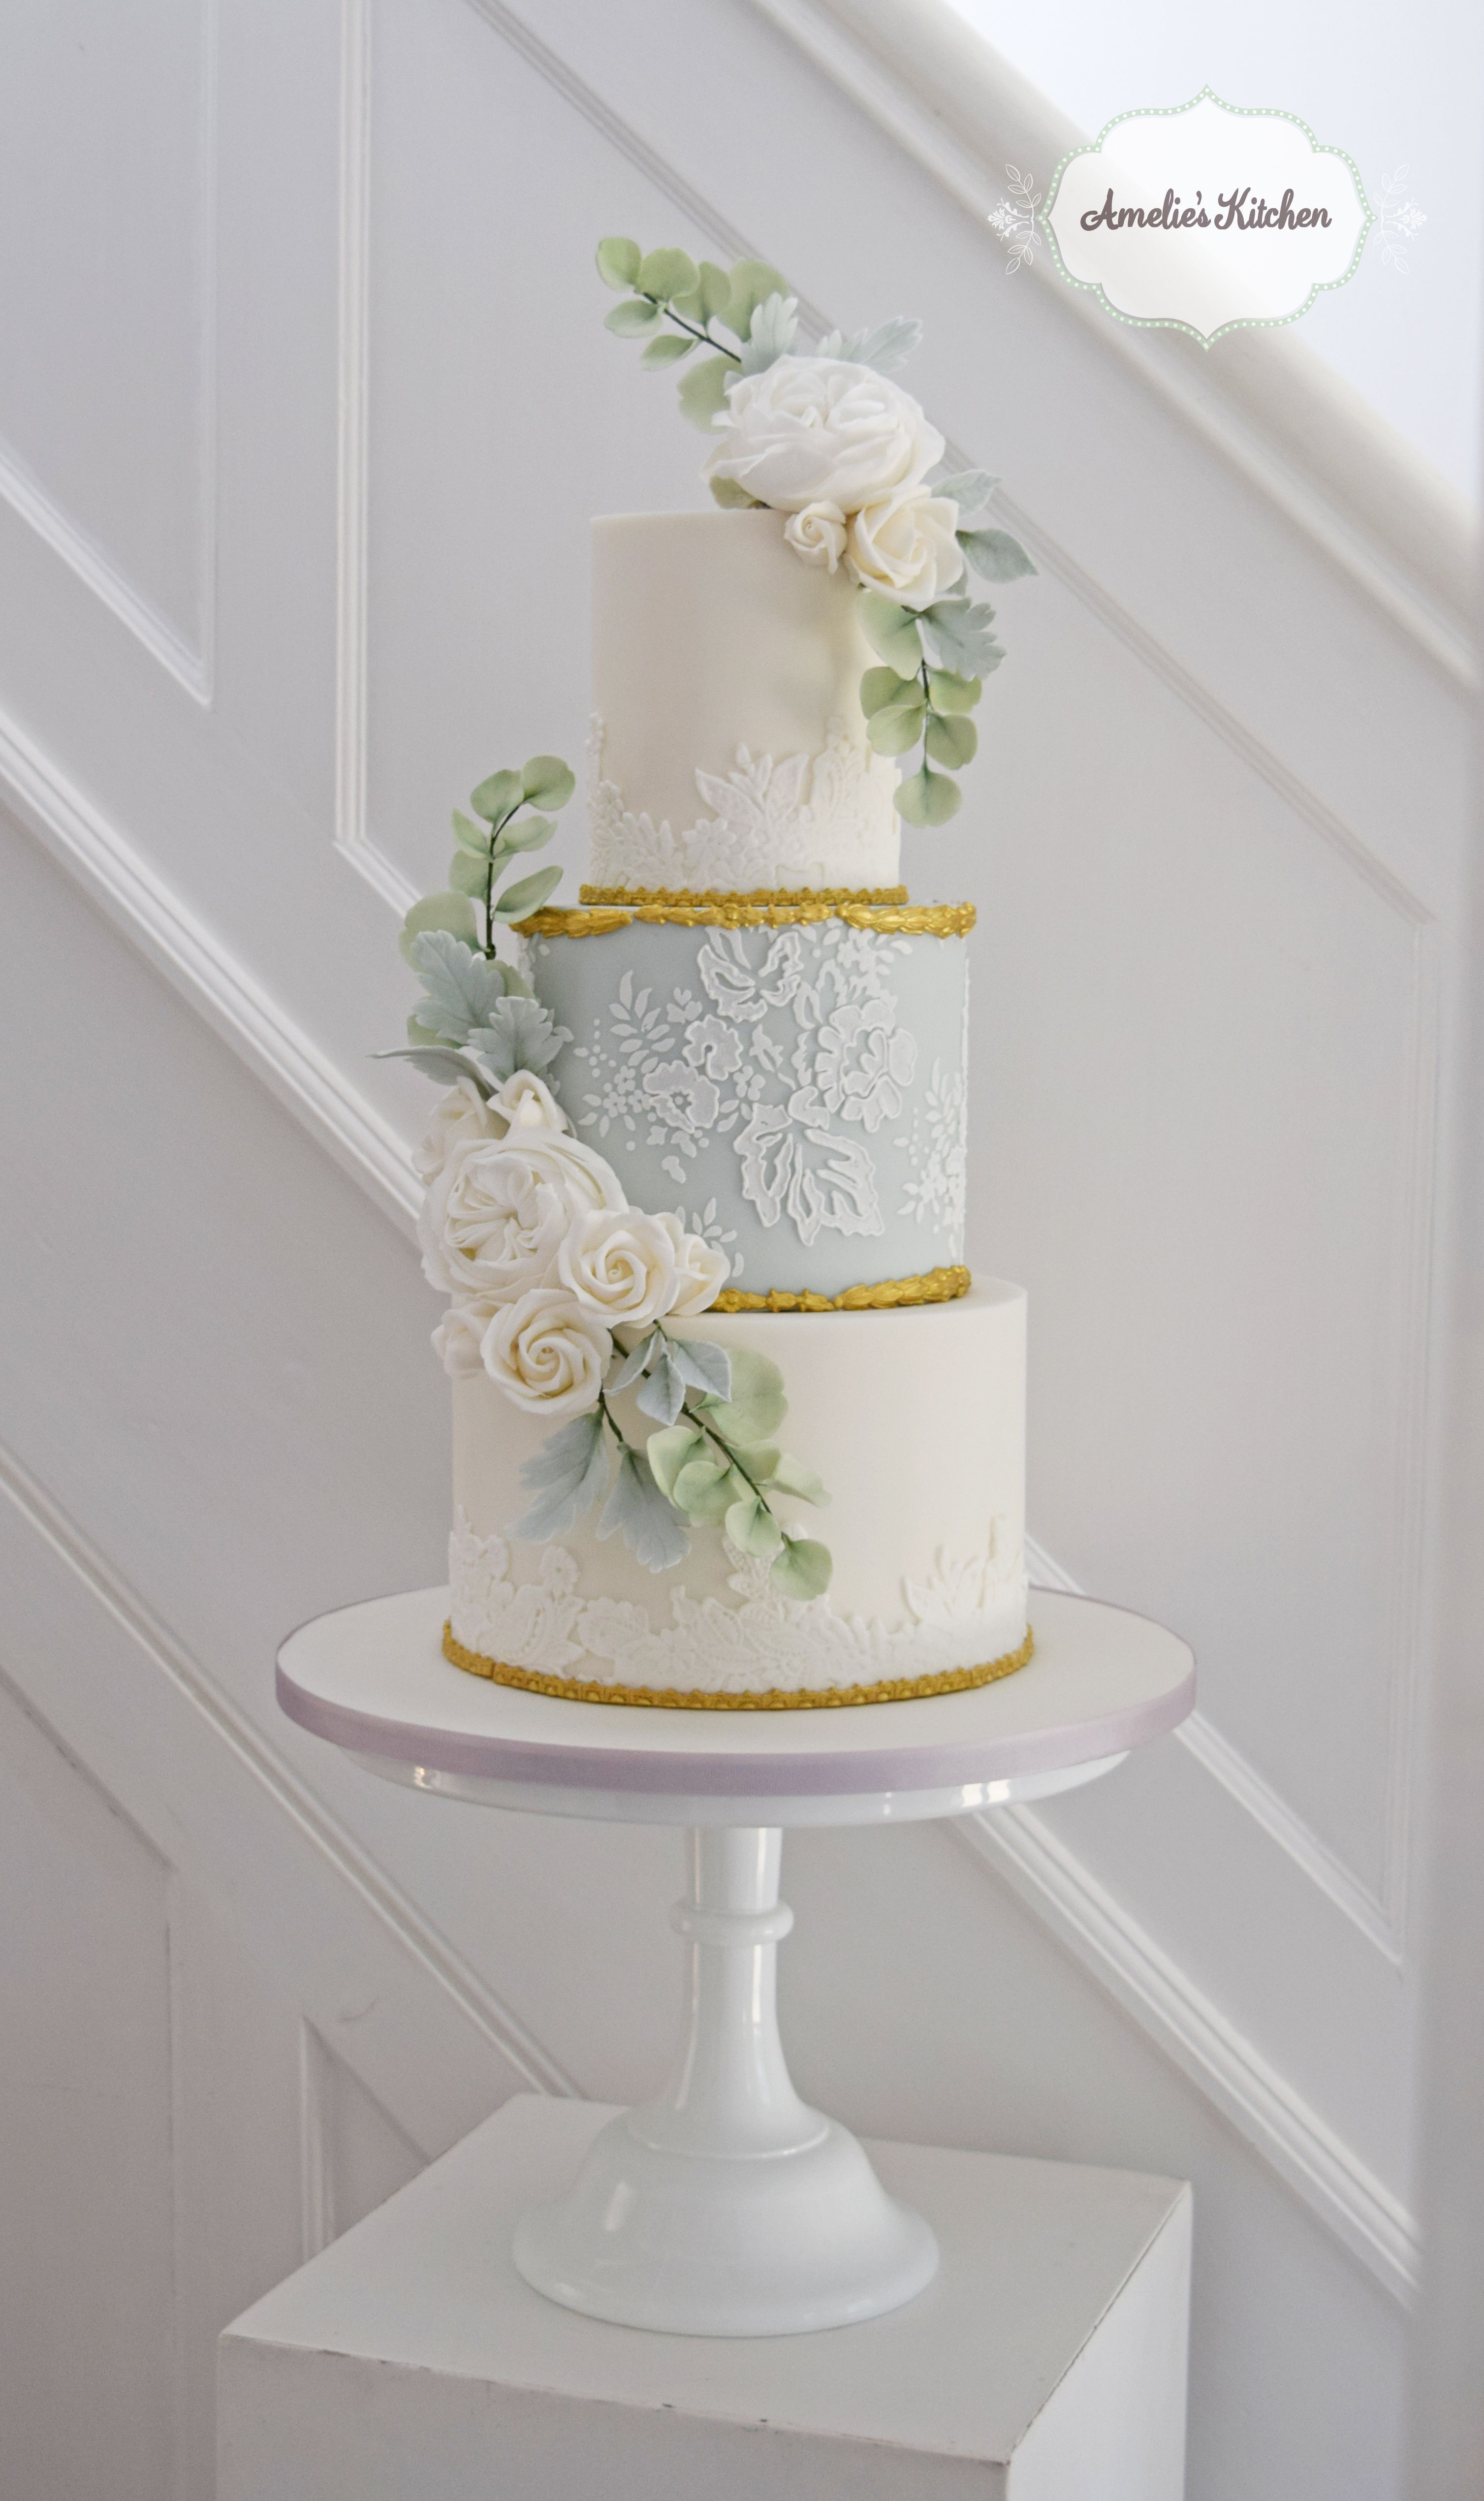 Repostpale blue and gold lace cake design for a wedding at